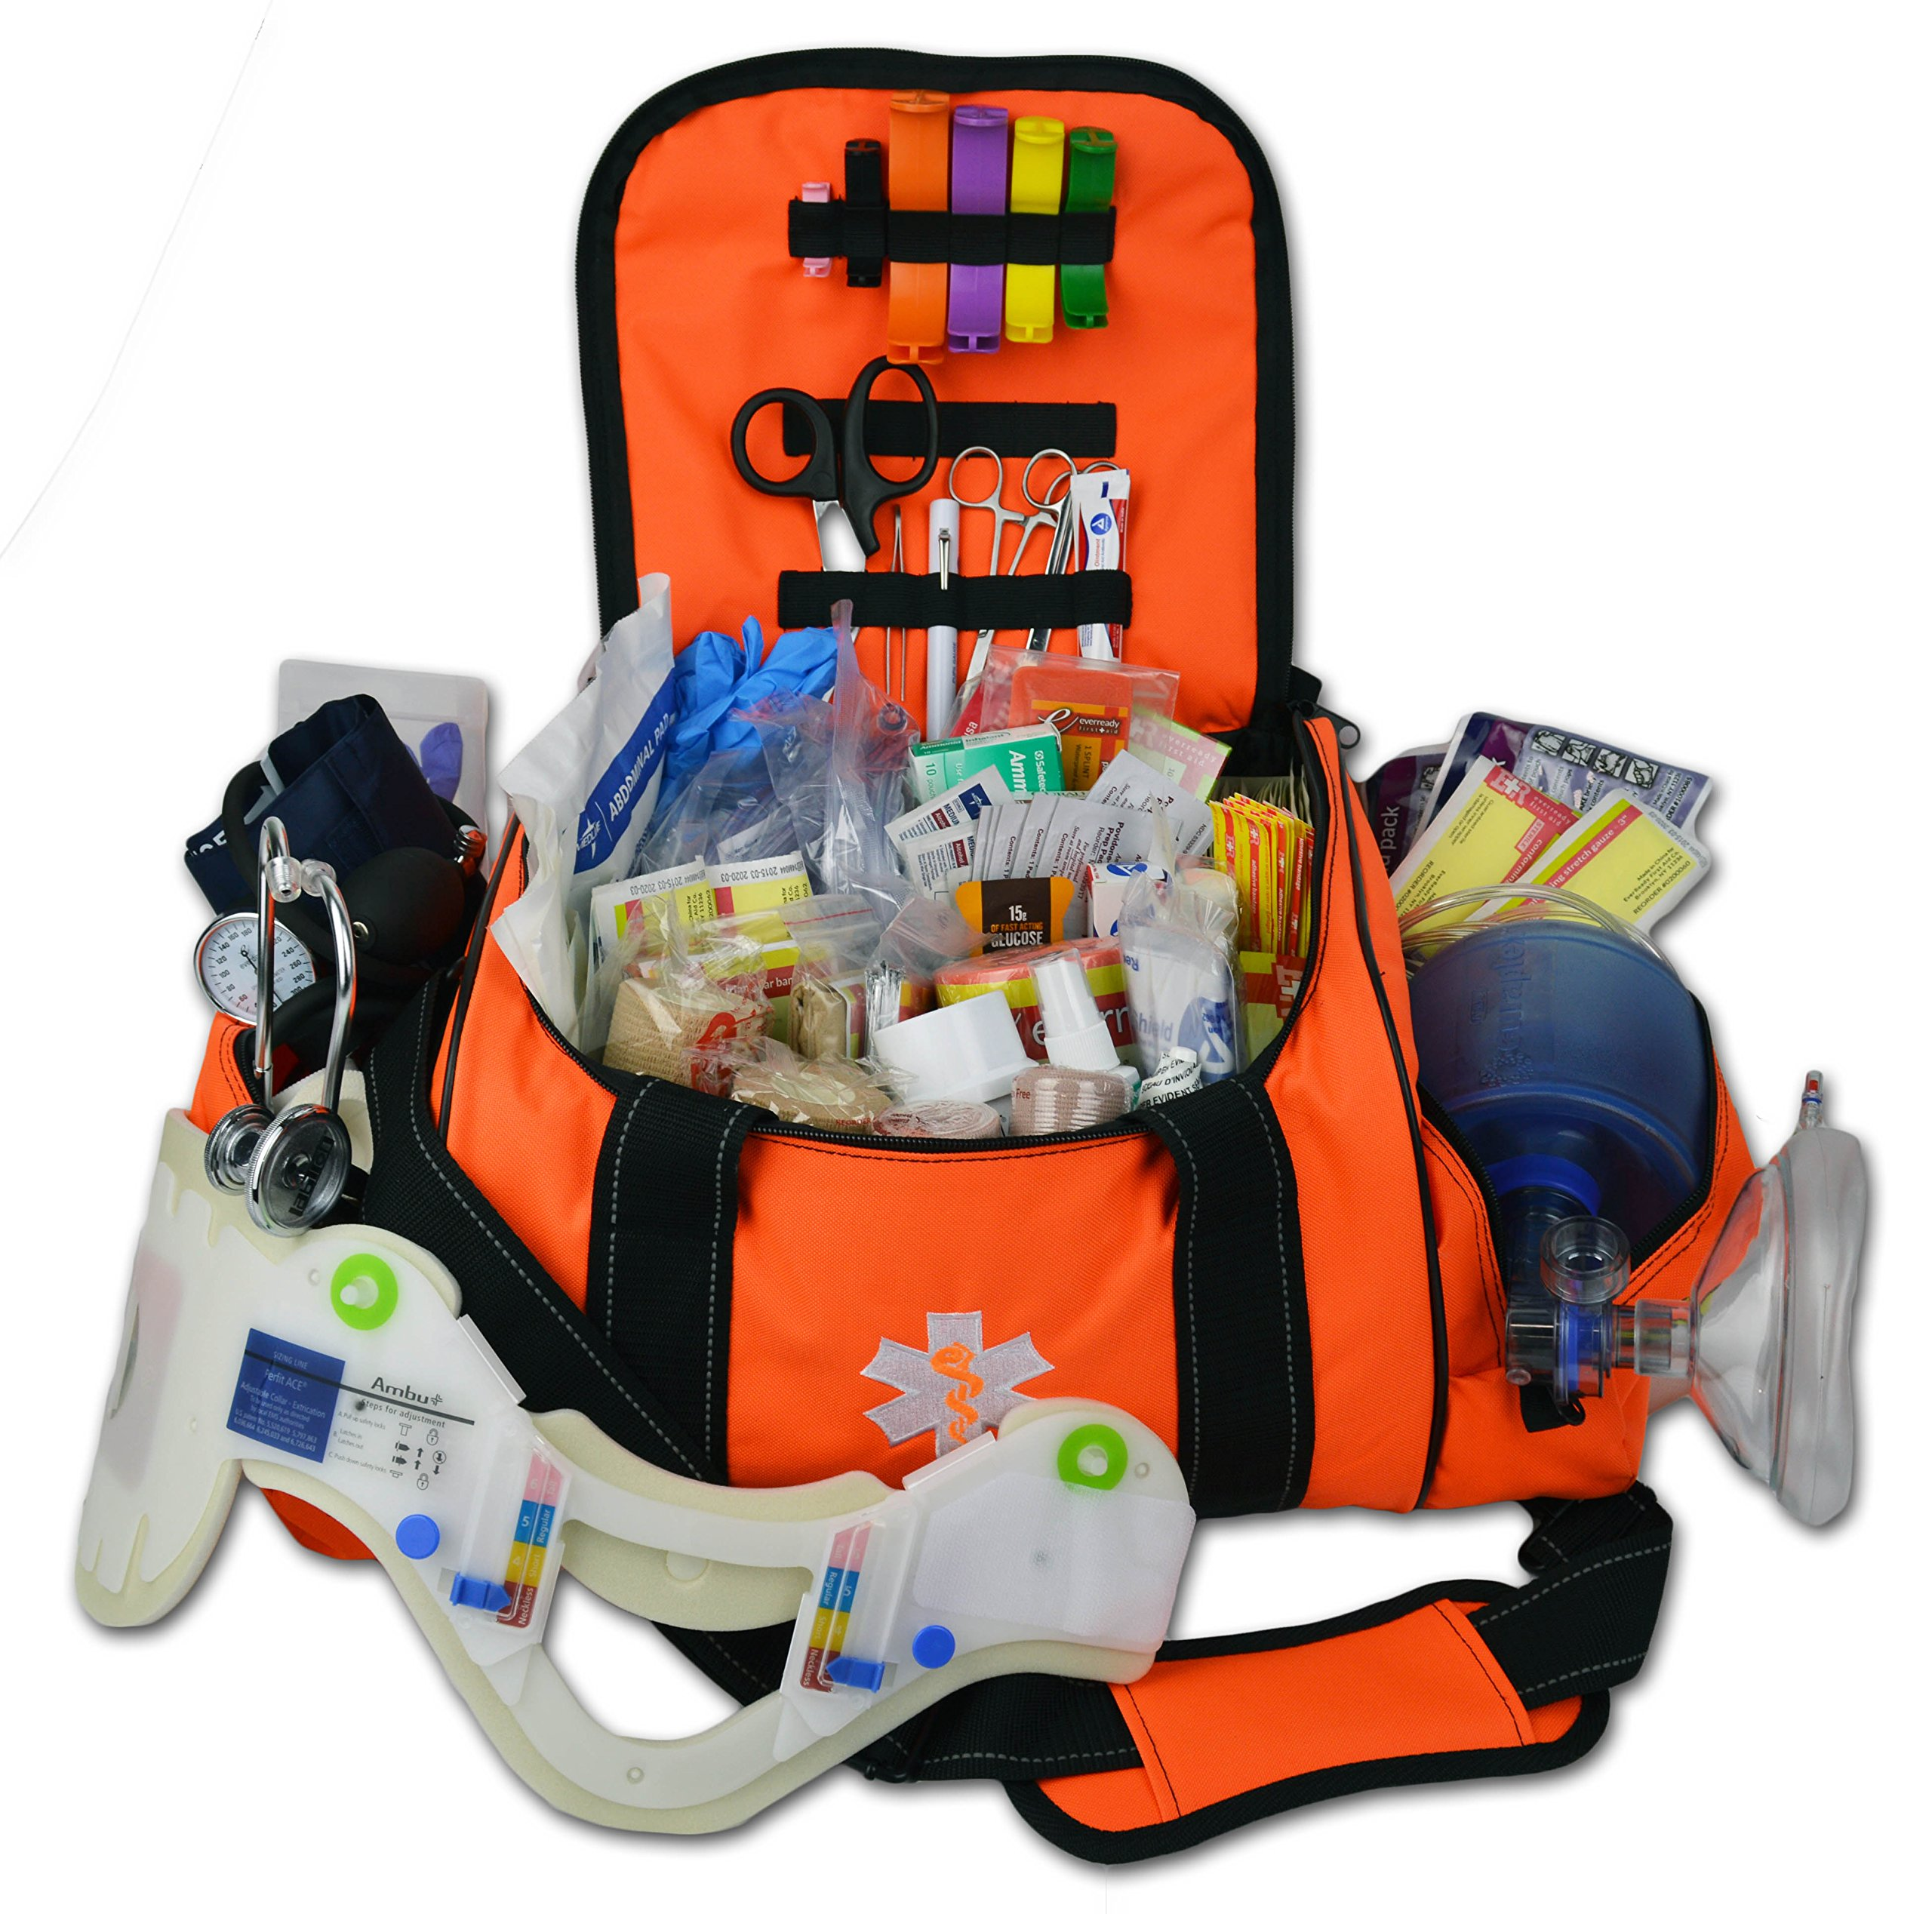 Lightning X Deluxe Stocked Large EMT First Aid Trauma Bag Fill Kit w/ Emergency Medical Supplies (Fluorescent Orange) by Lightning X Products